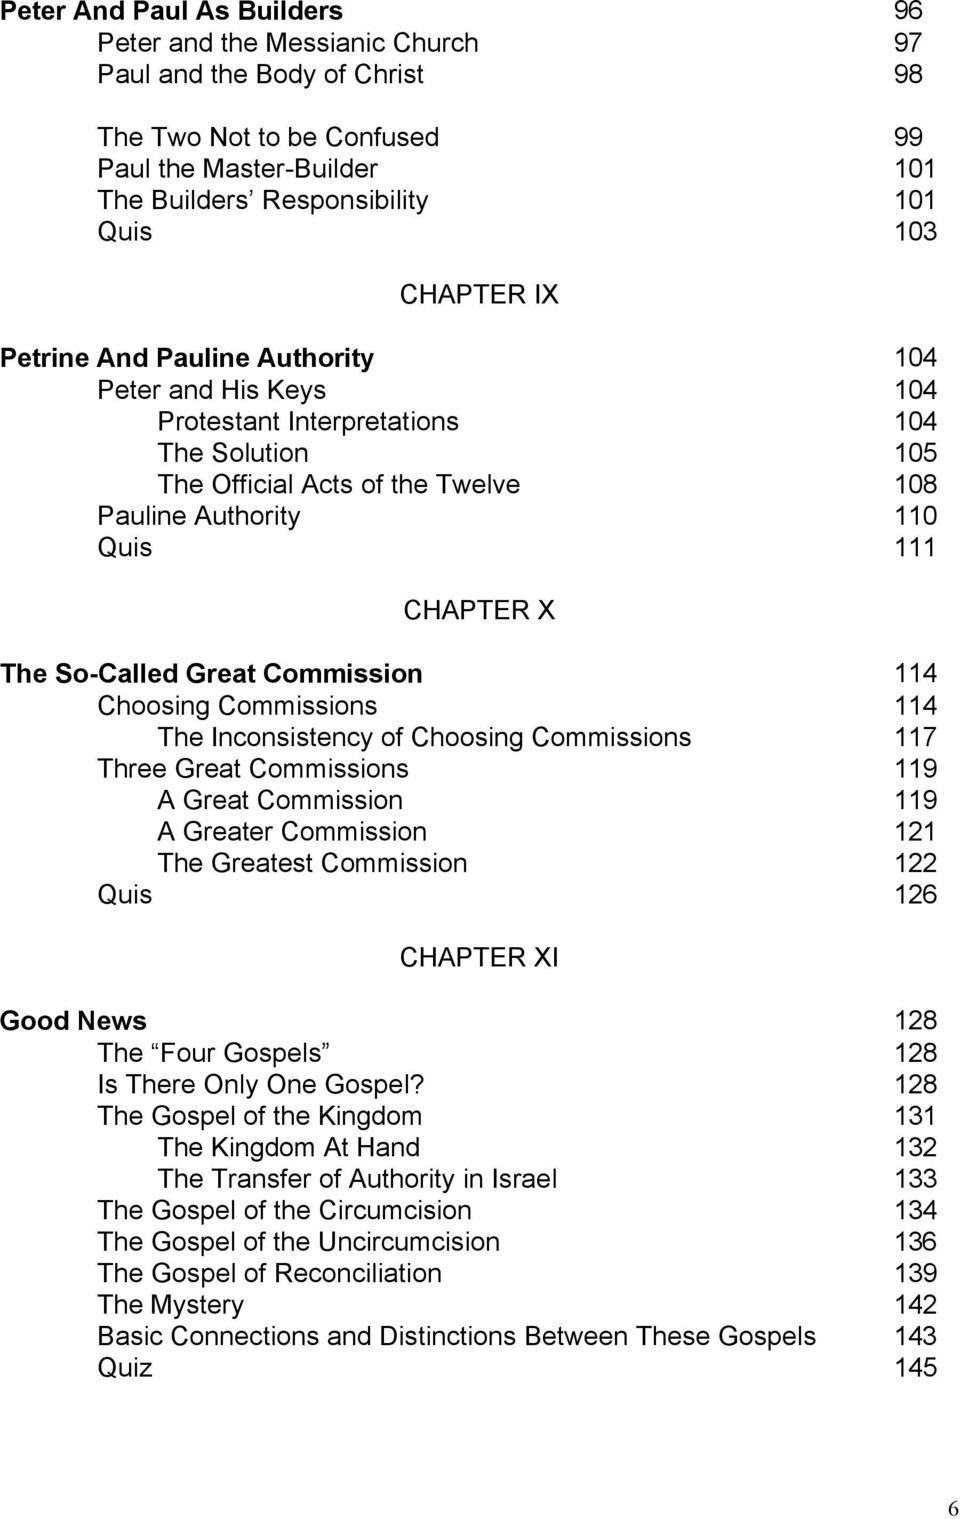 So-Called Great Commission 114 Choosing Commissions 114 The Inconsistency of Choosing Commissions 117 Three Great Commissions 119 A Great Commission 119 A Greater Commission 121 The Greatest